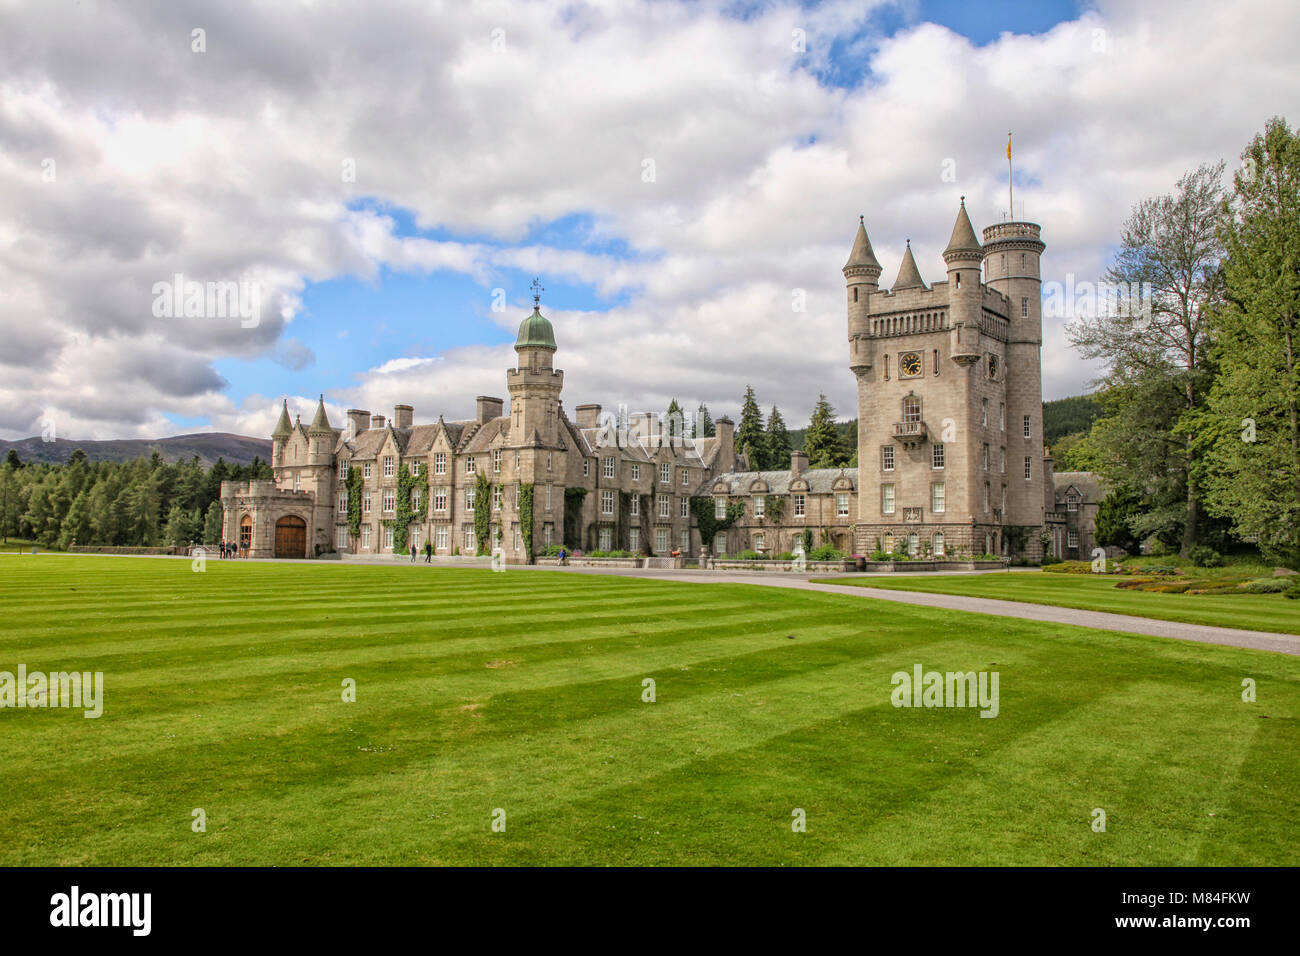 balmoral castle in schottland ferienhaus der britischen k nigsfamilie stockfoto bild. Black Bedroom Furniture Sets. Home Design Ideas